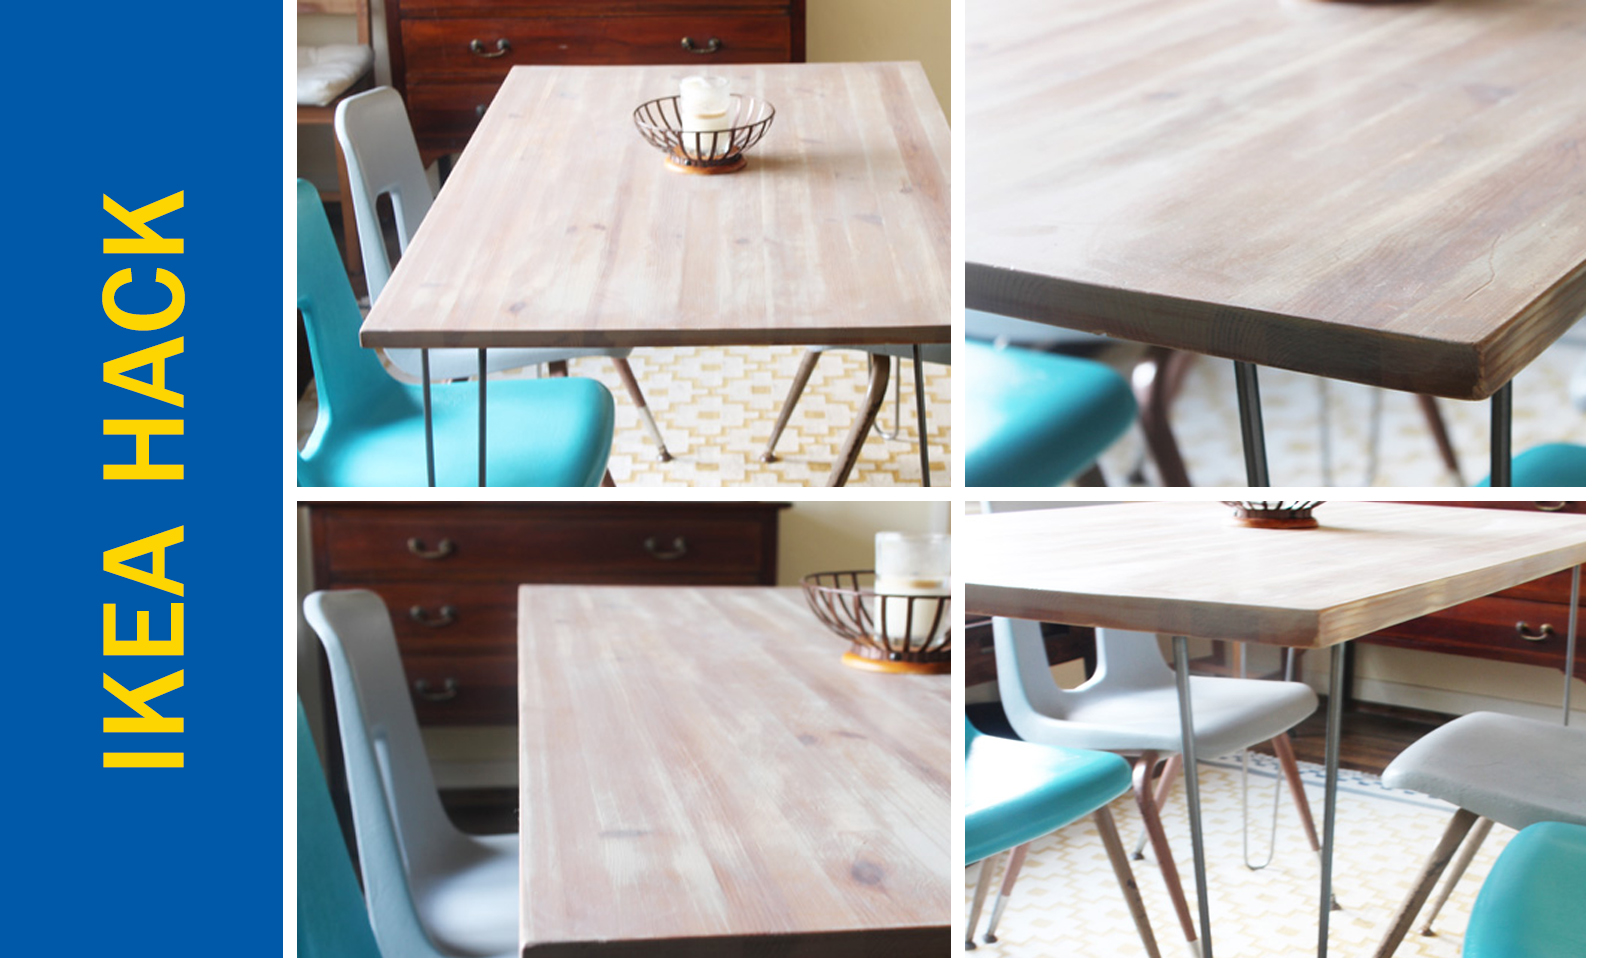 Awesome Ikea Hack of the Week: An apartment-sized dining table